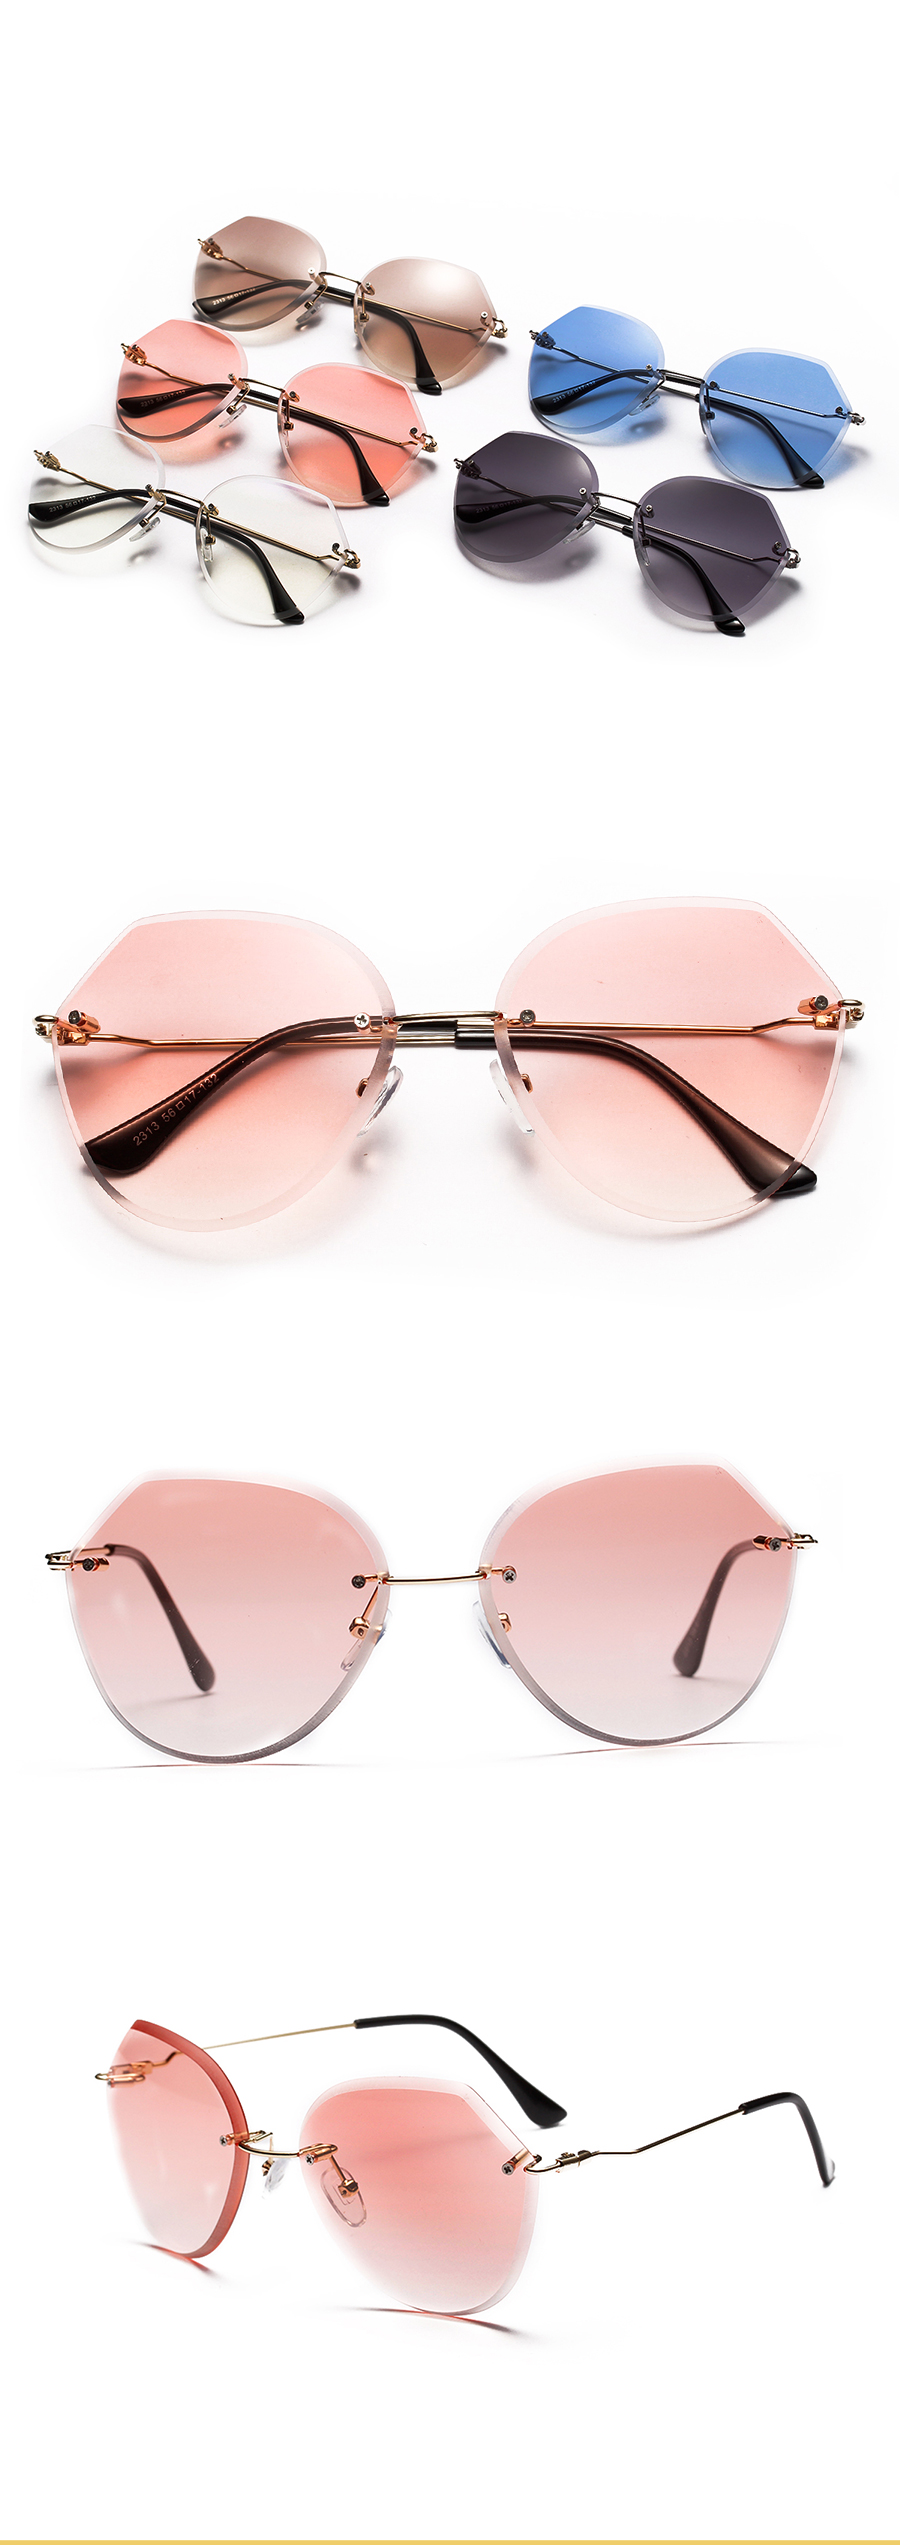 1f43d64e8f 2313 01 2313 02  2313 03 2313 04 2313 05 2313 06 2313 07 2313 08 2313 09.  Related Products from Other Seller. ROYAL GIRL Fashion Sunglasses Men Women  Brand ...